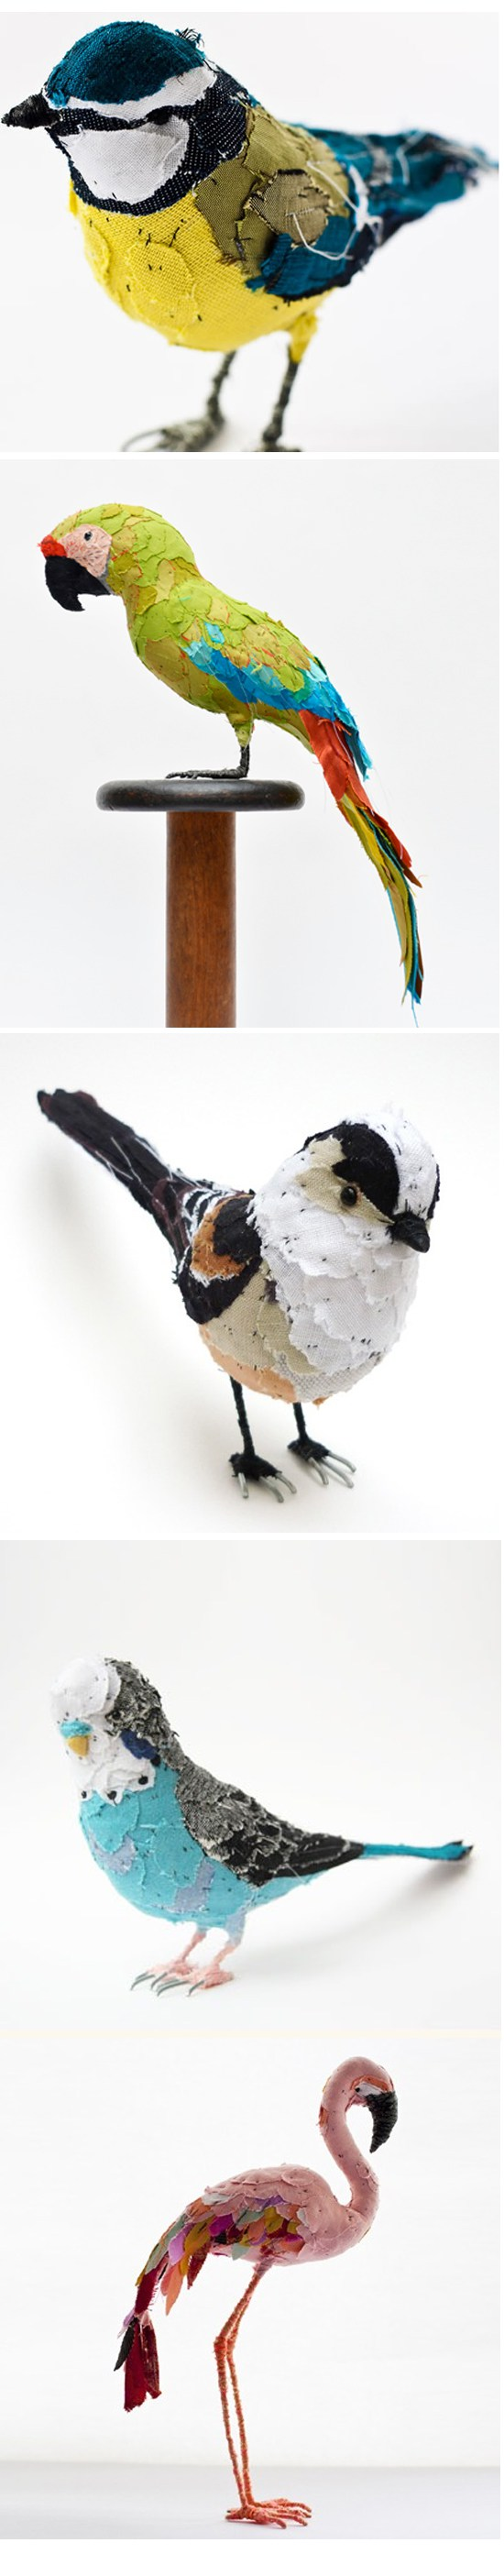 Abigail Brown handmade fabric birds copy | birds | Pinterest ...